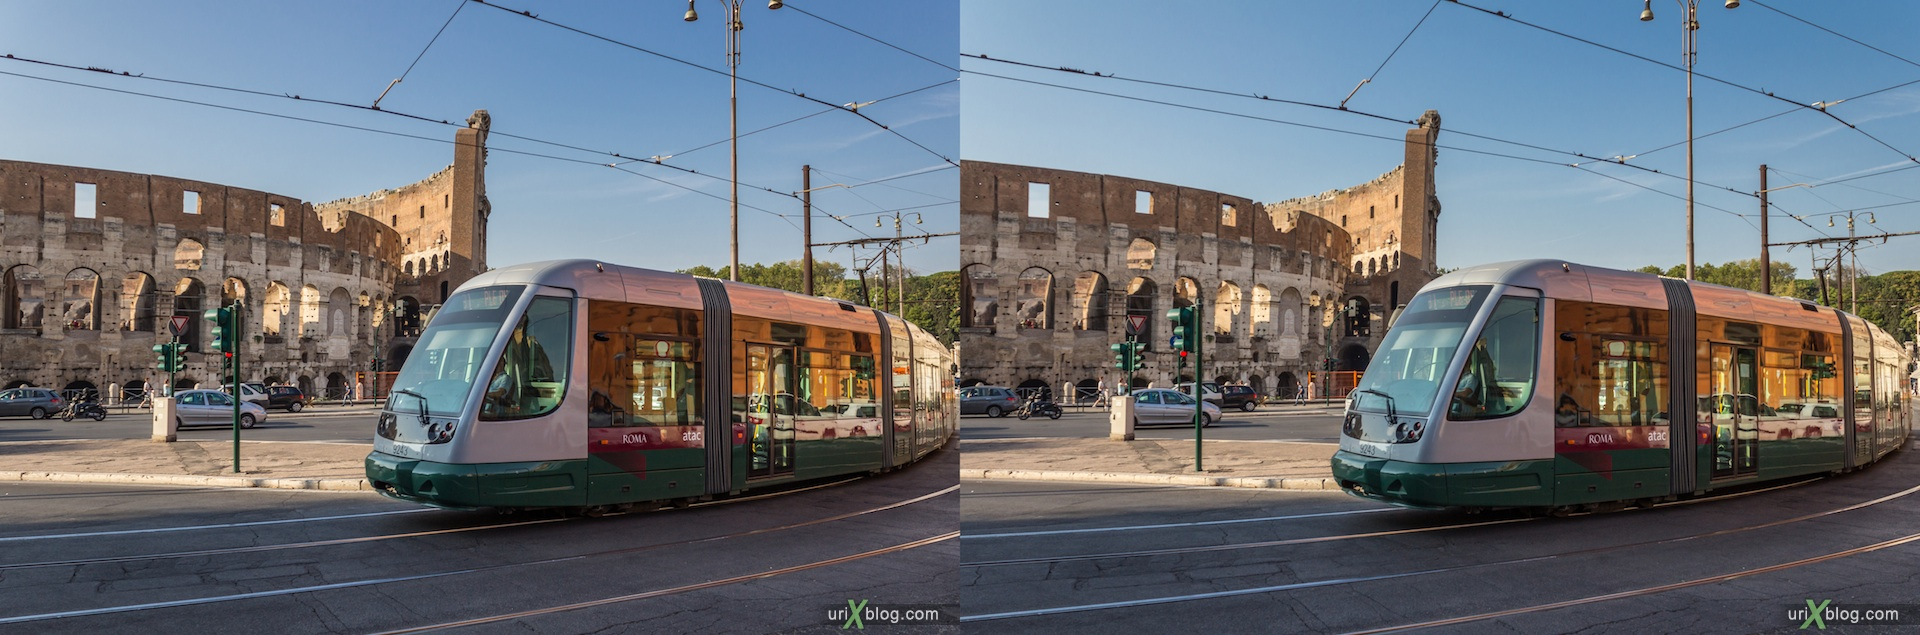 2012, Colosseum, Coliseum, Flavian Amphitheatre, Rome, Italy, 3D, stereo pair, cross-eyed, crossview, cross view stereo pair